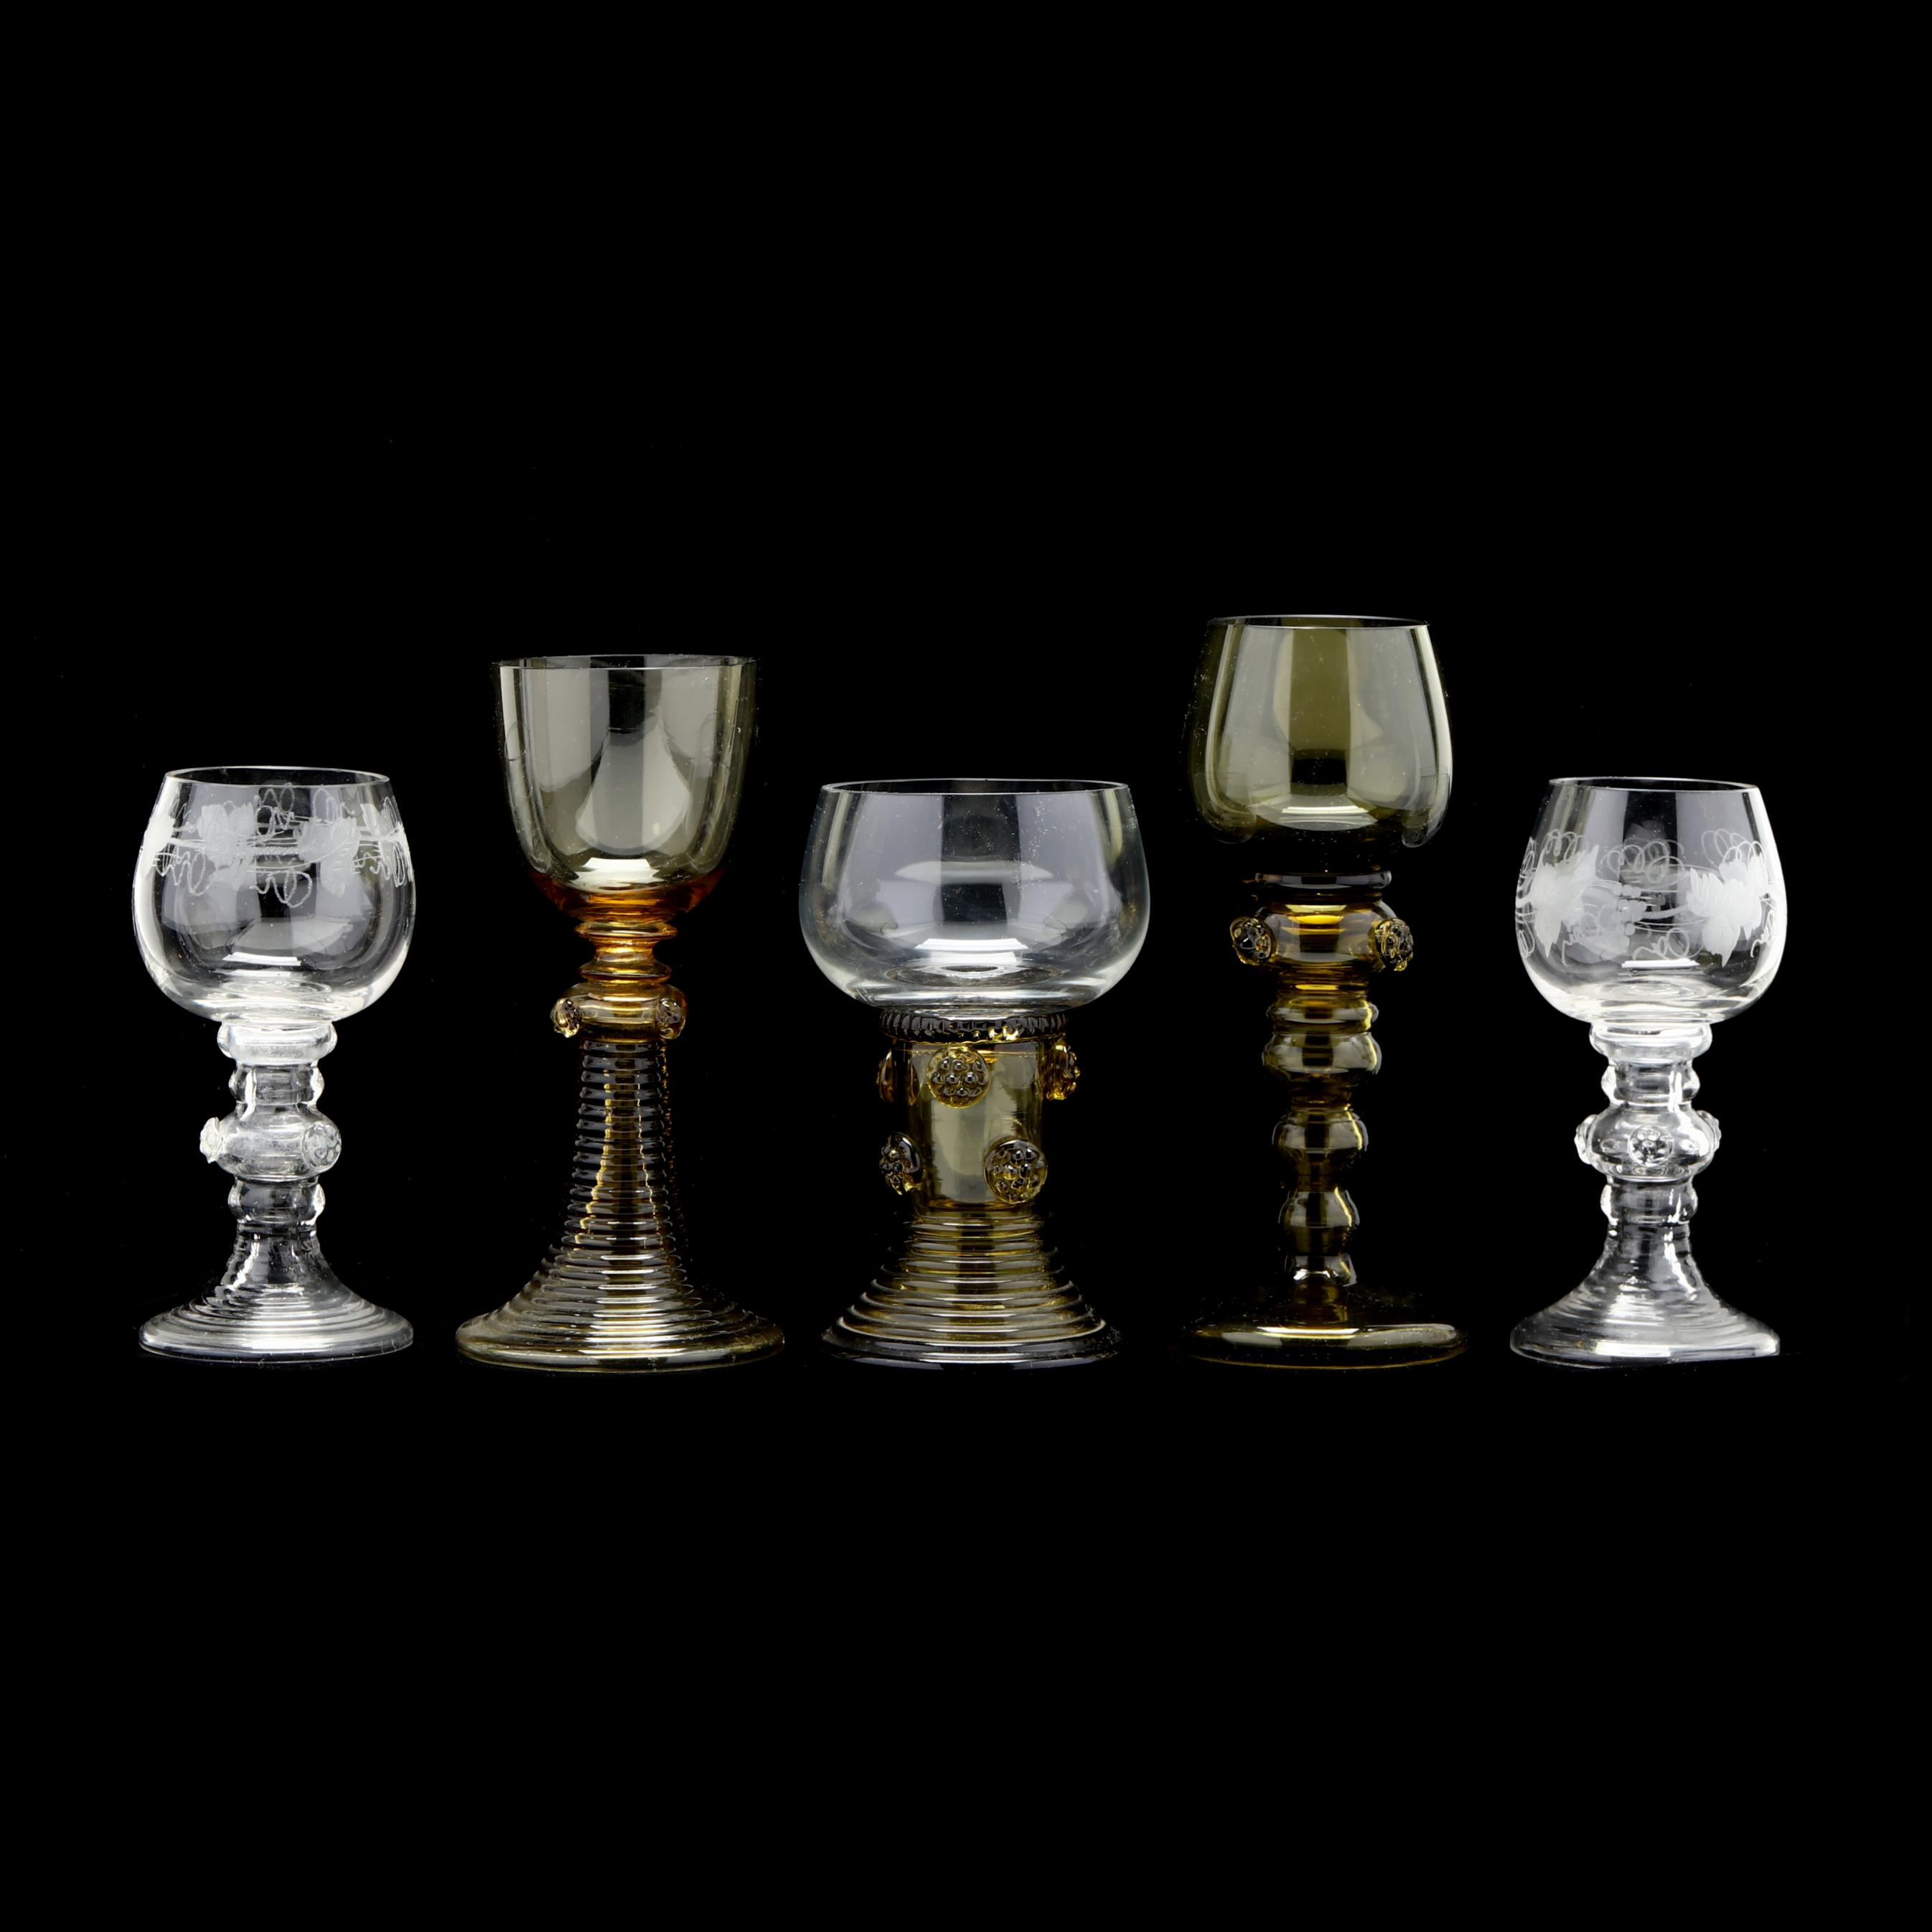 five-antique-german-roemer-glasses